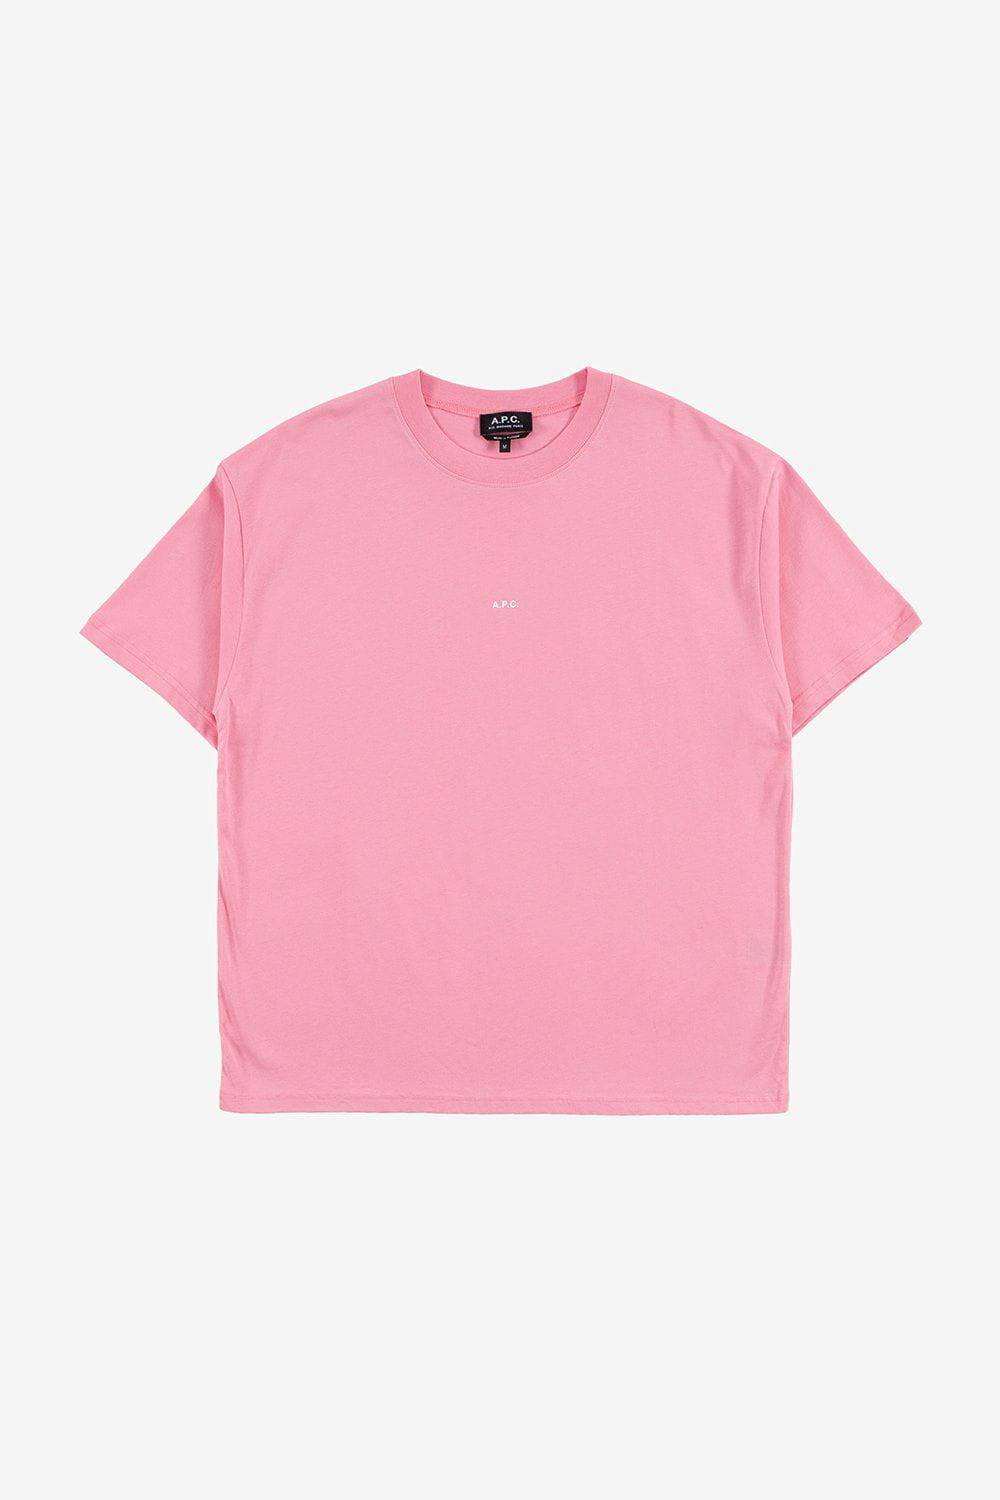 A.P.C. Apparel Kyle Logo T-shirt Rose